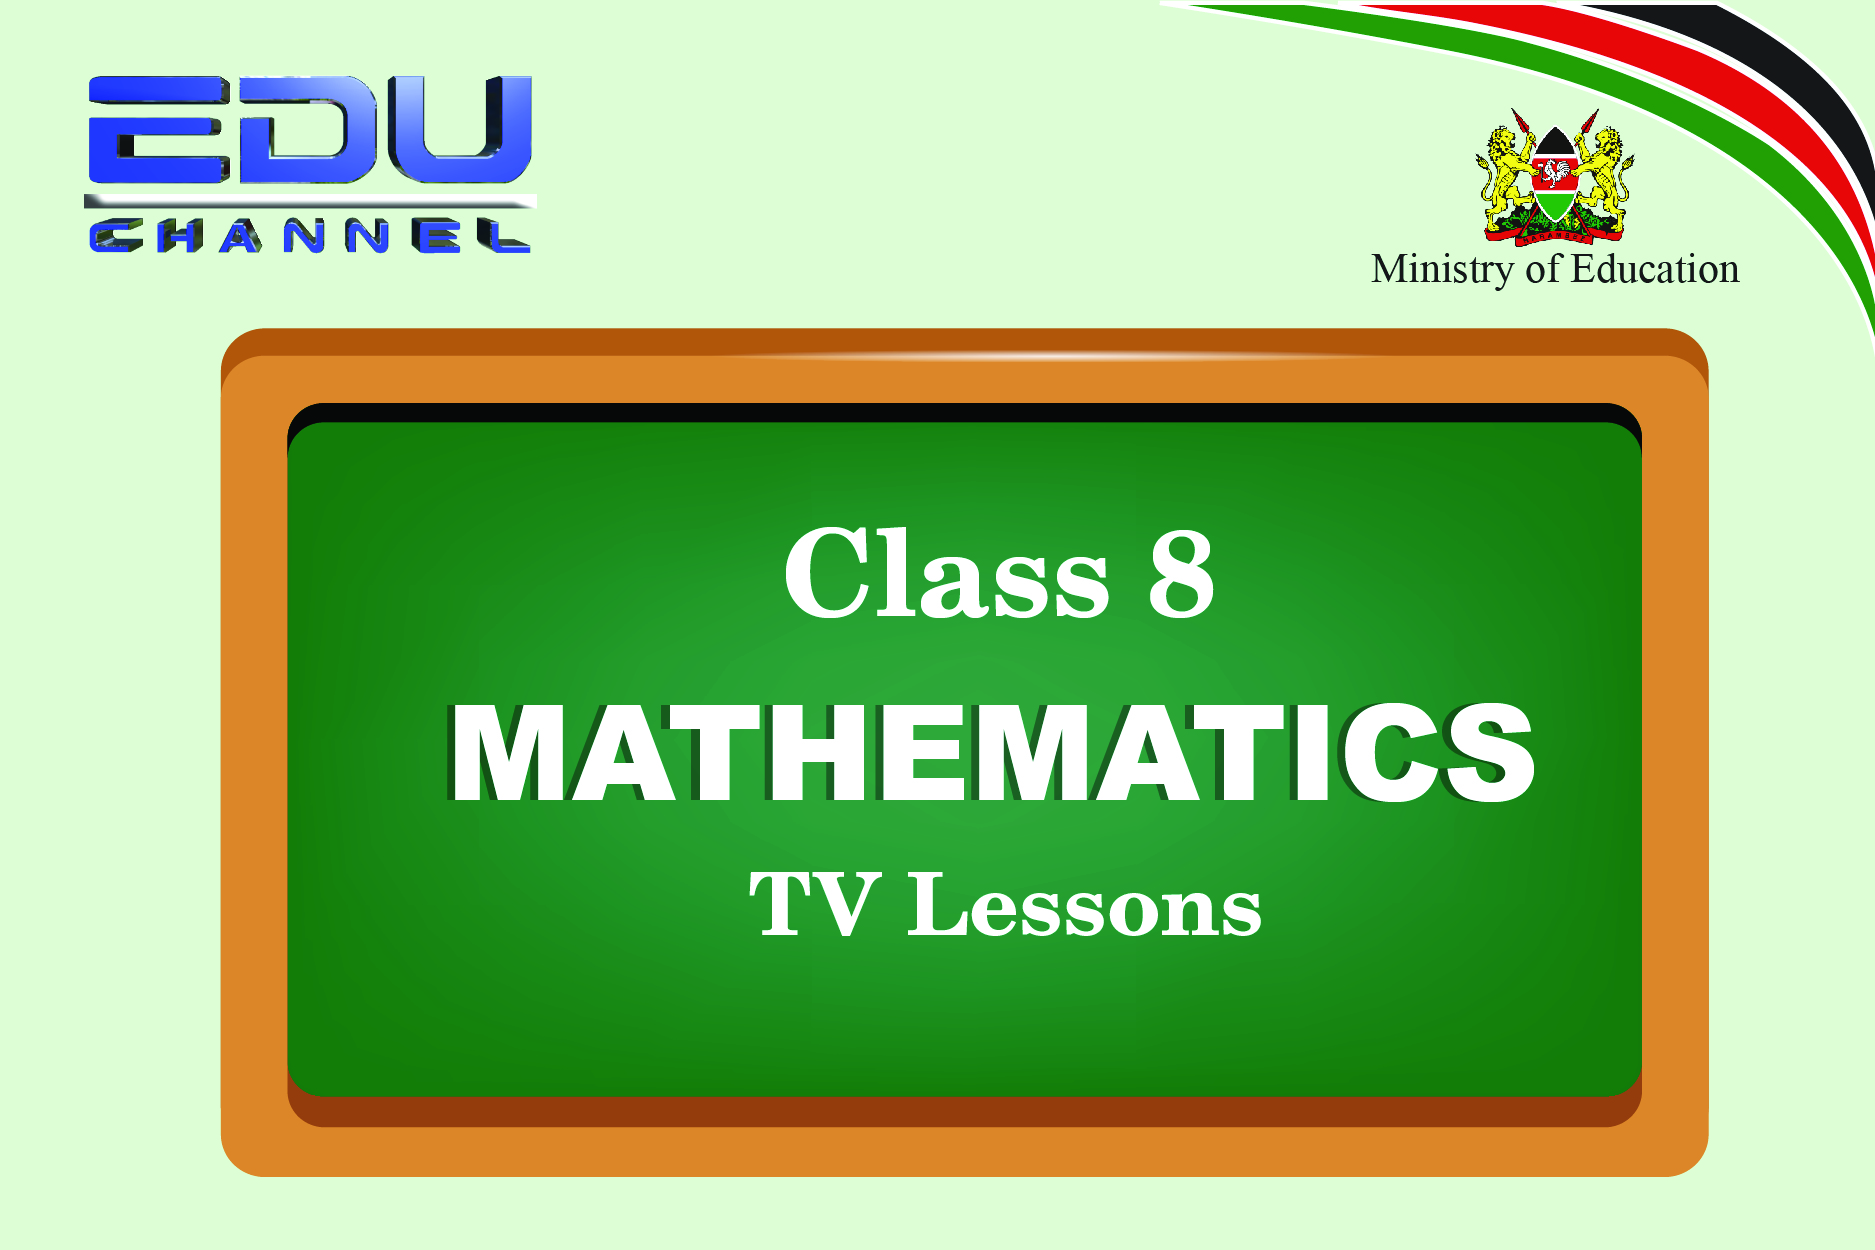 Standard 8 Mathematics Lesson 2 : Numbers Conversion of percentage to fractions and vice versa